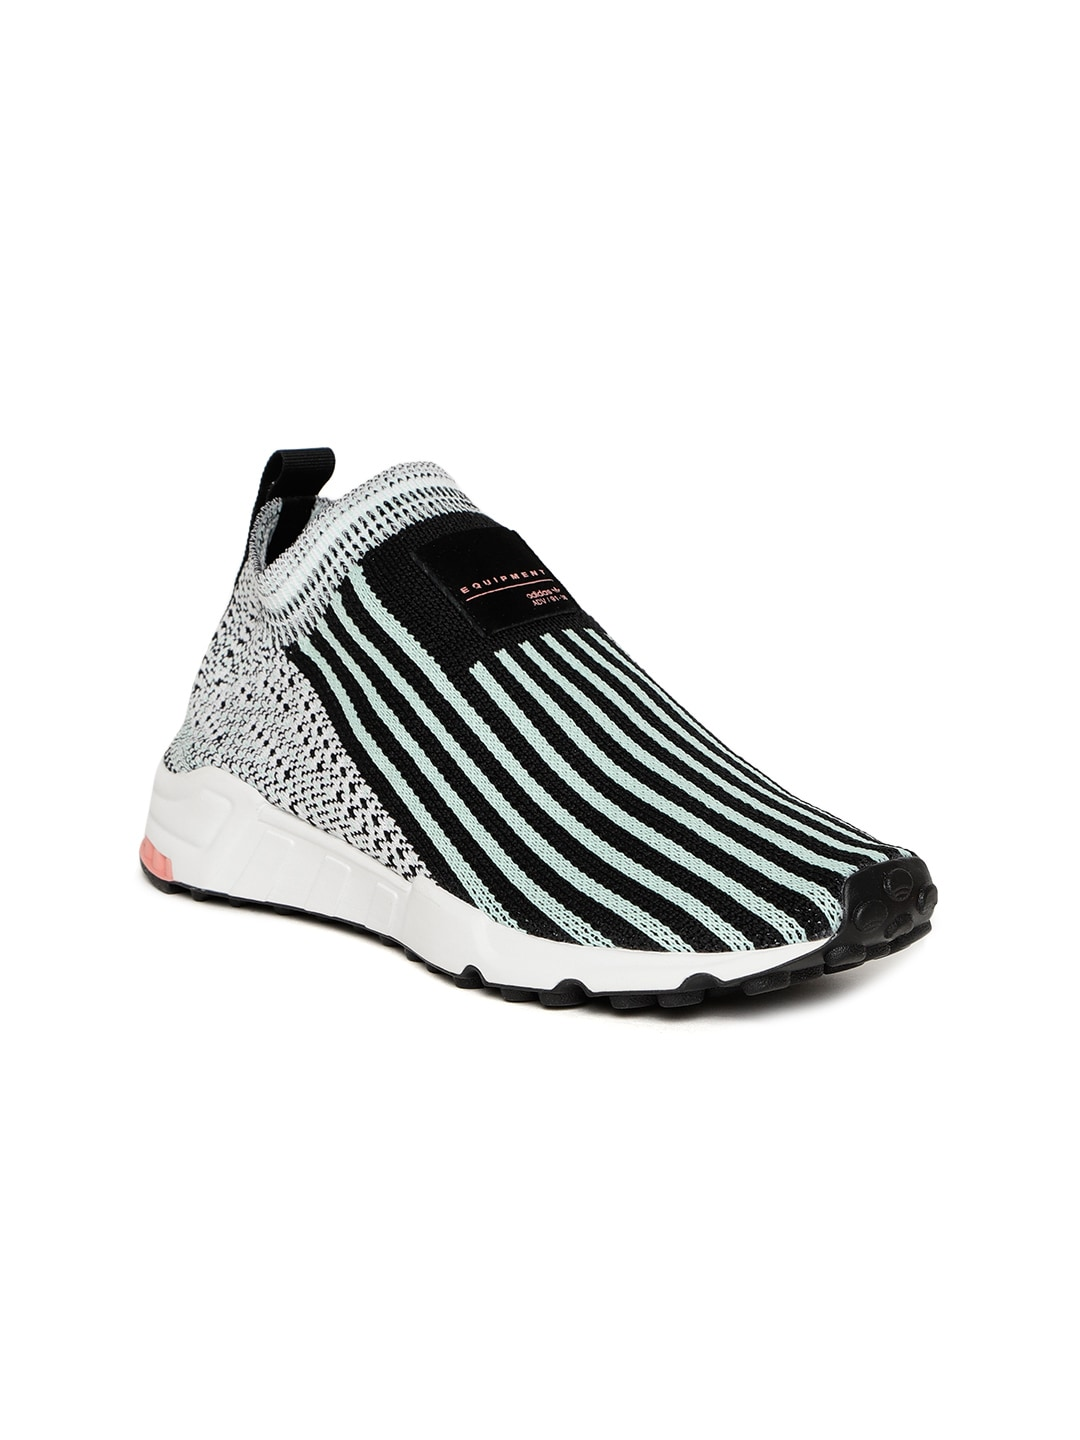 74b640781ad8 Adidas Slip On Shoes - Buy Adidas Slip On Shoes online in India